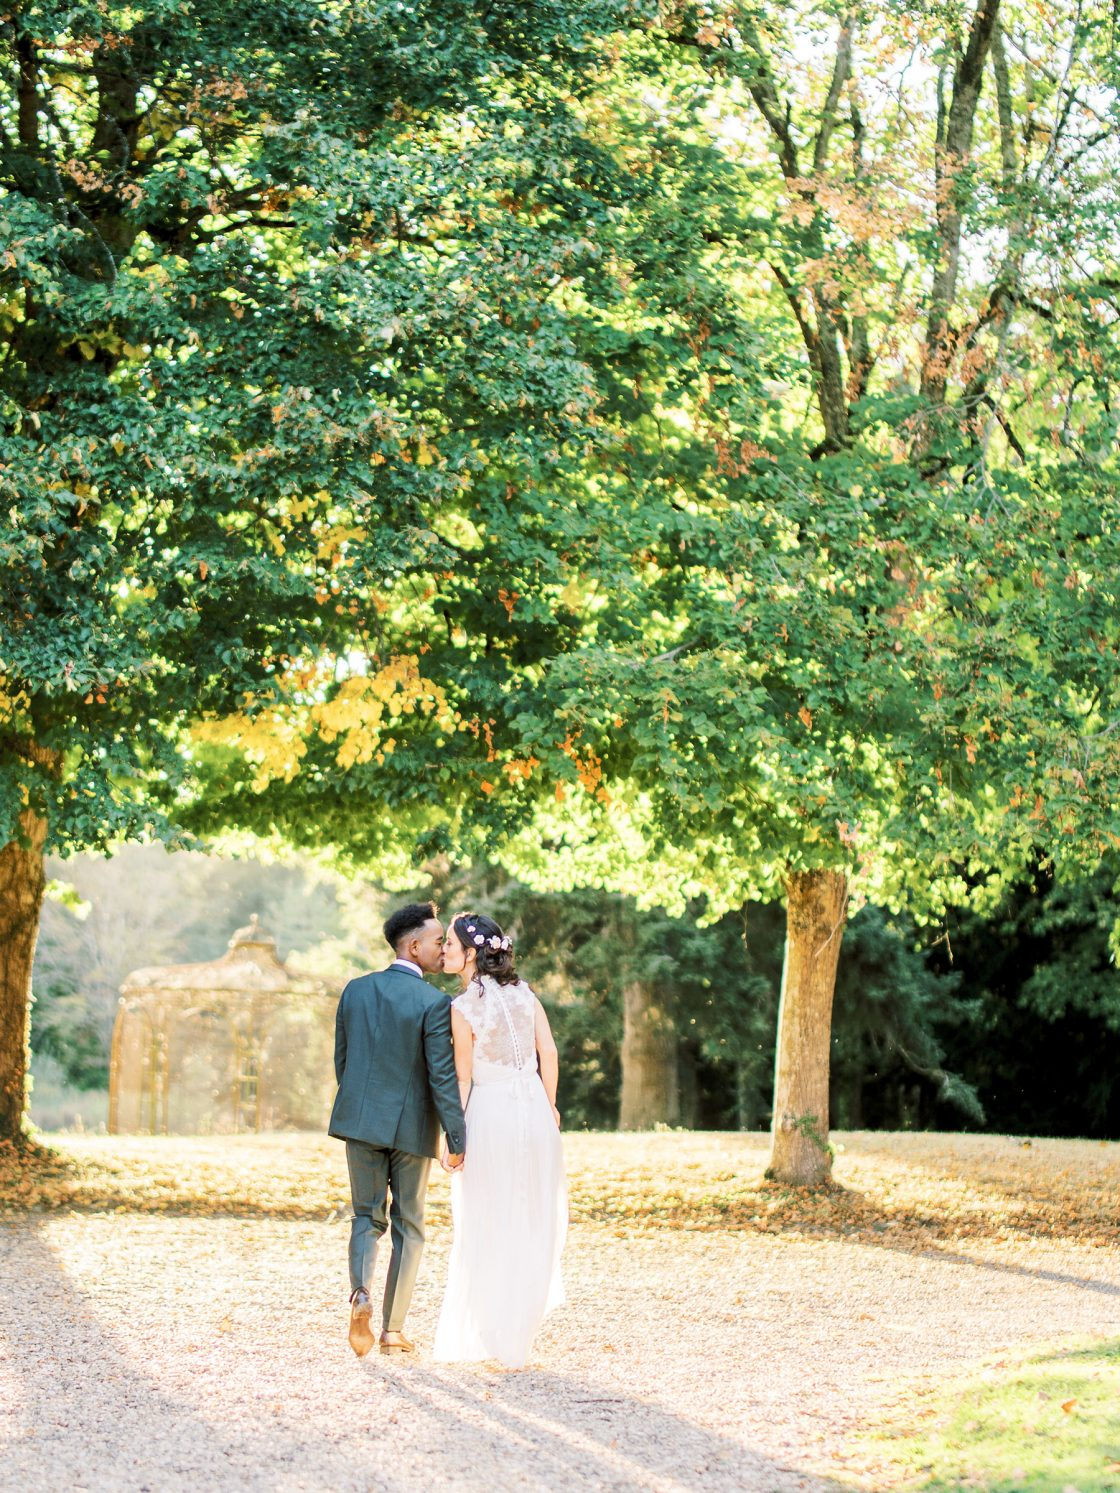 French Chateau Wedding Inspired by Nature Romain Vaucher25